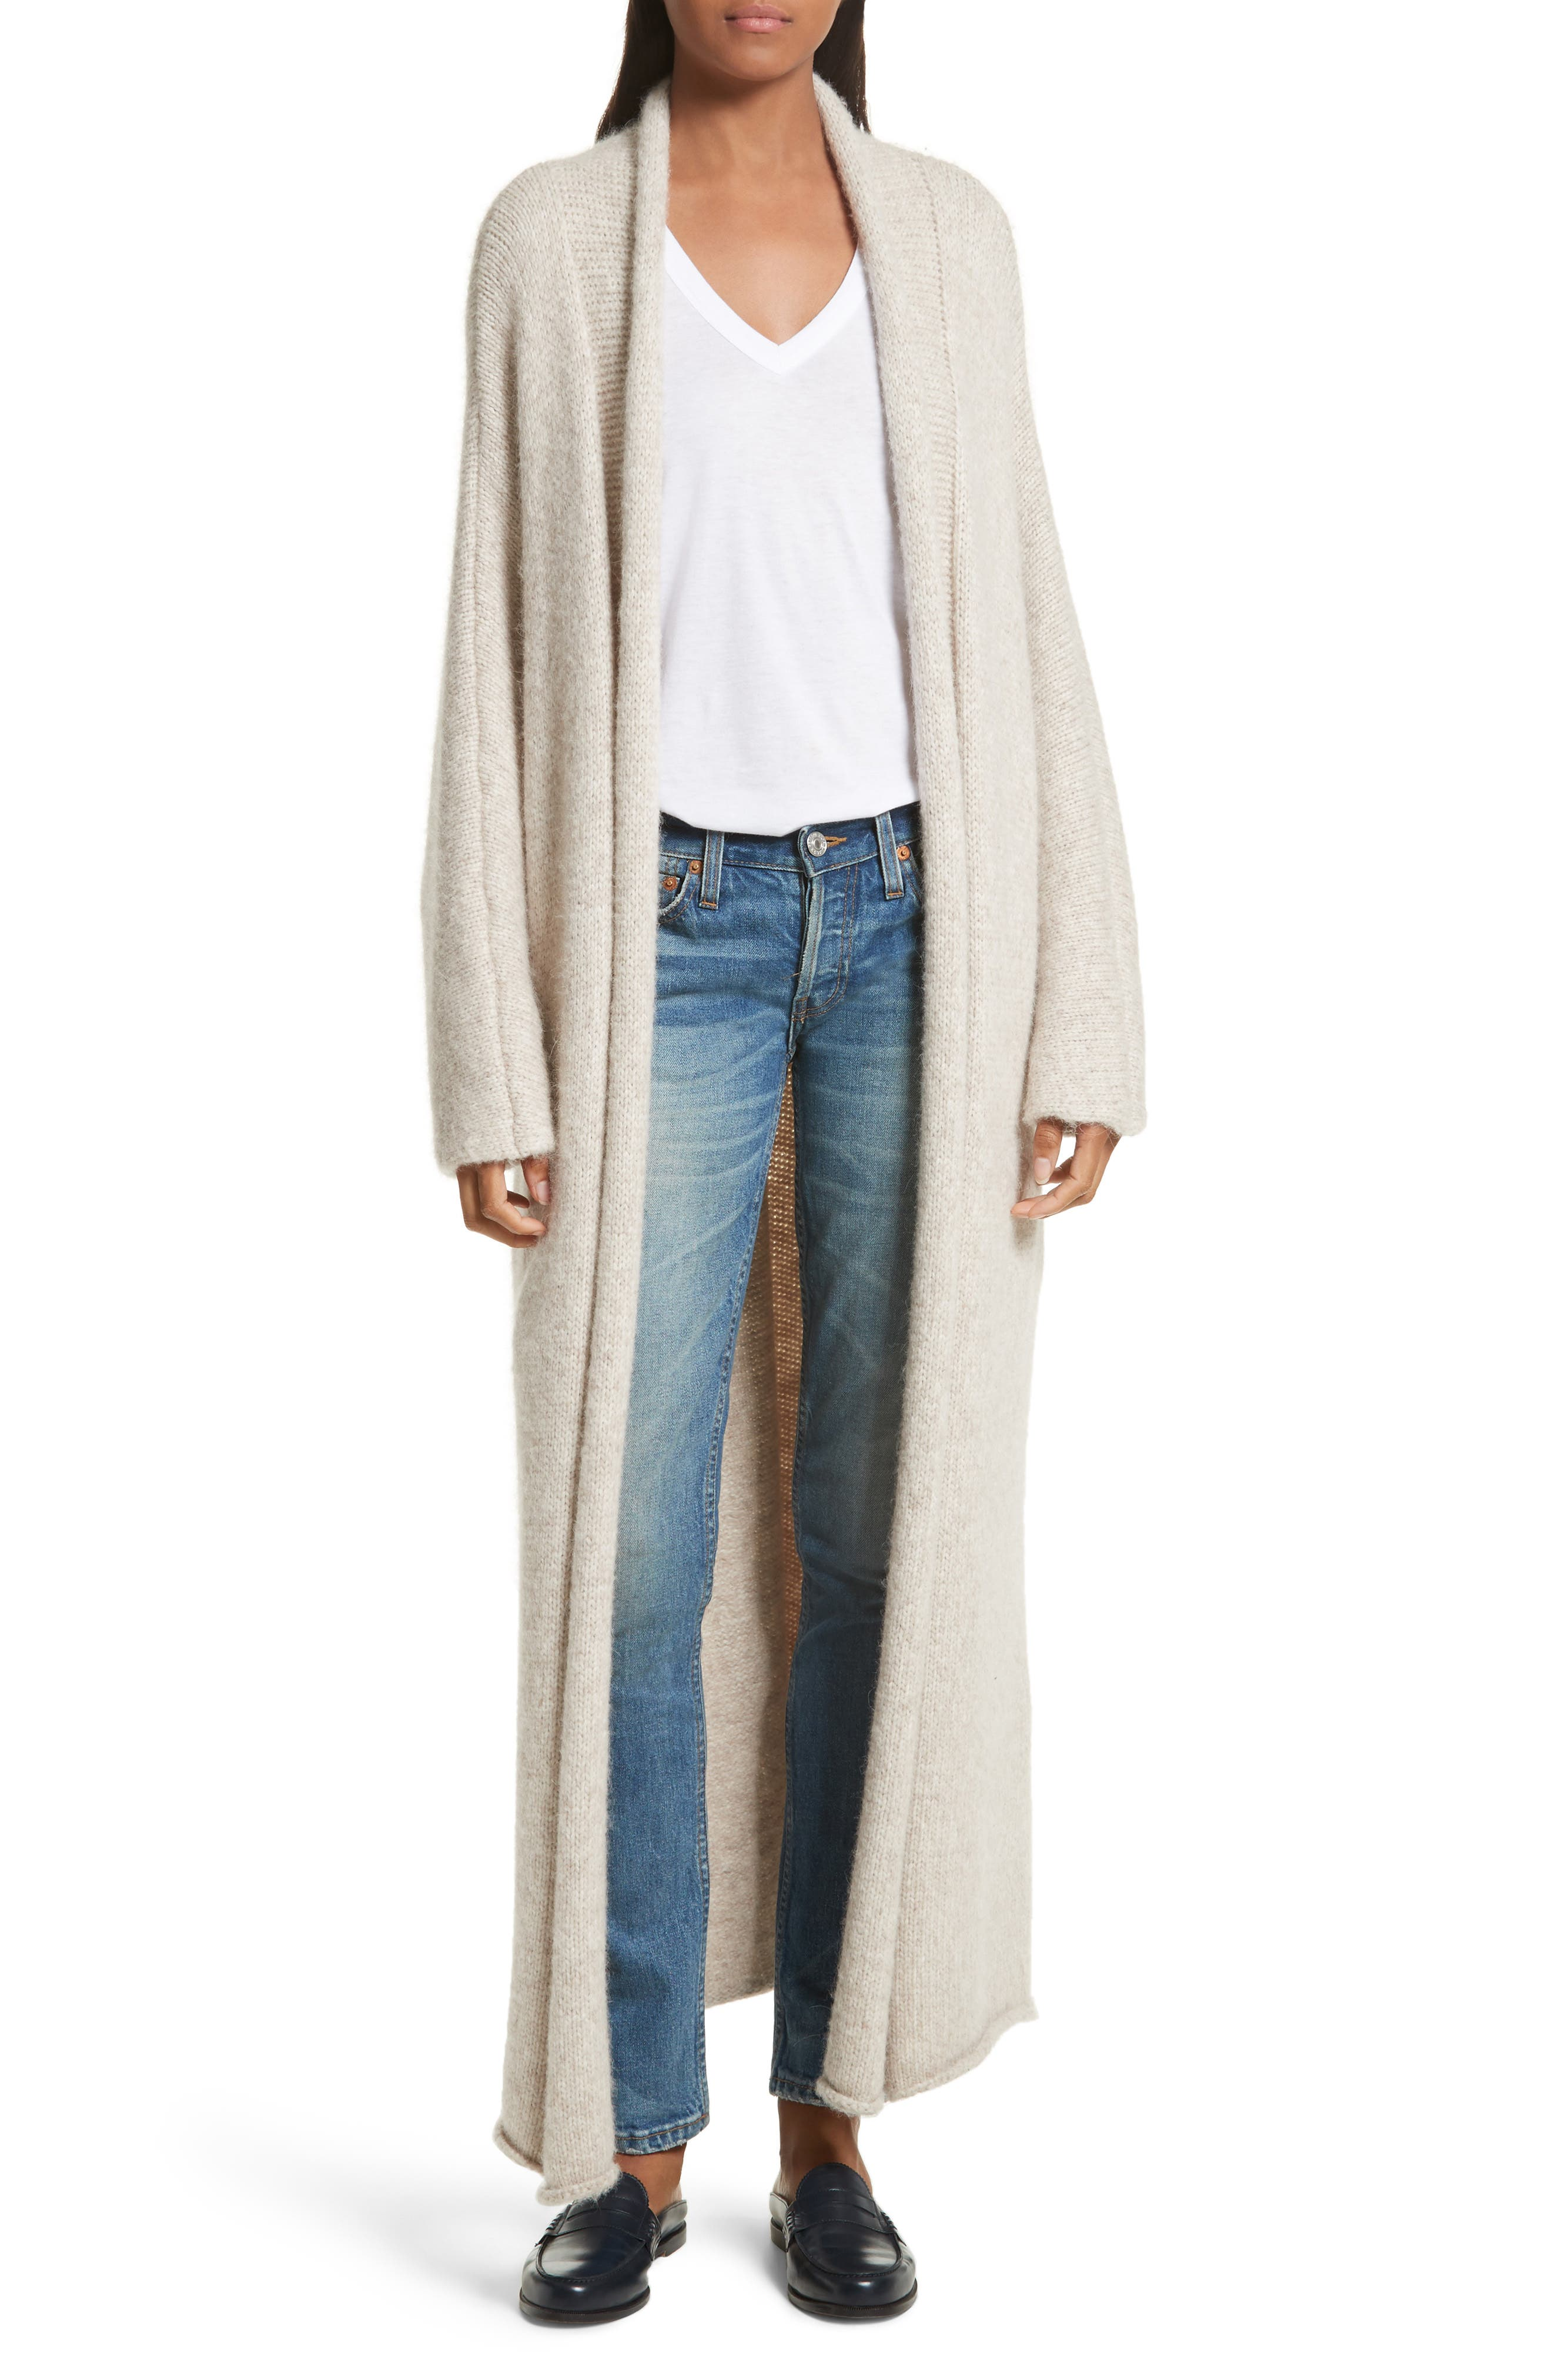 Elizabeth and James Alden Alpaca Blend Duster